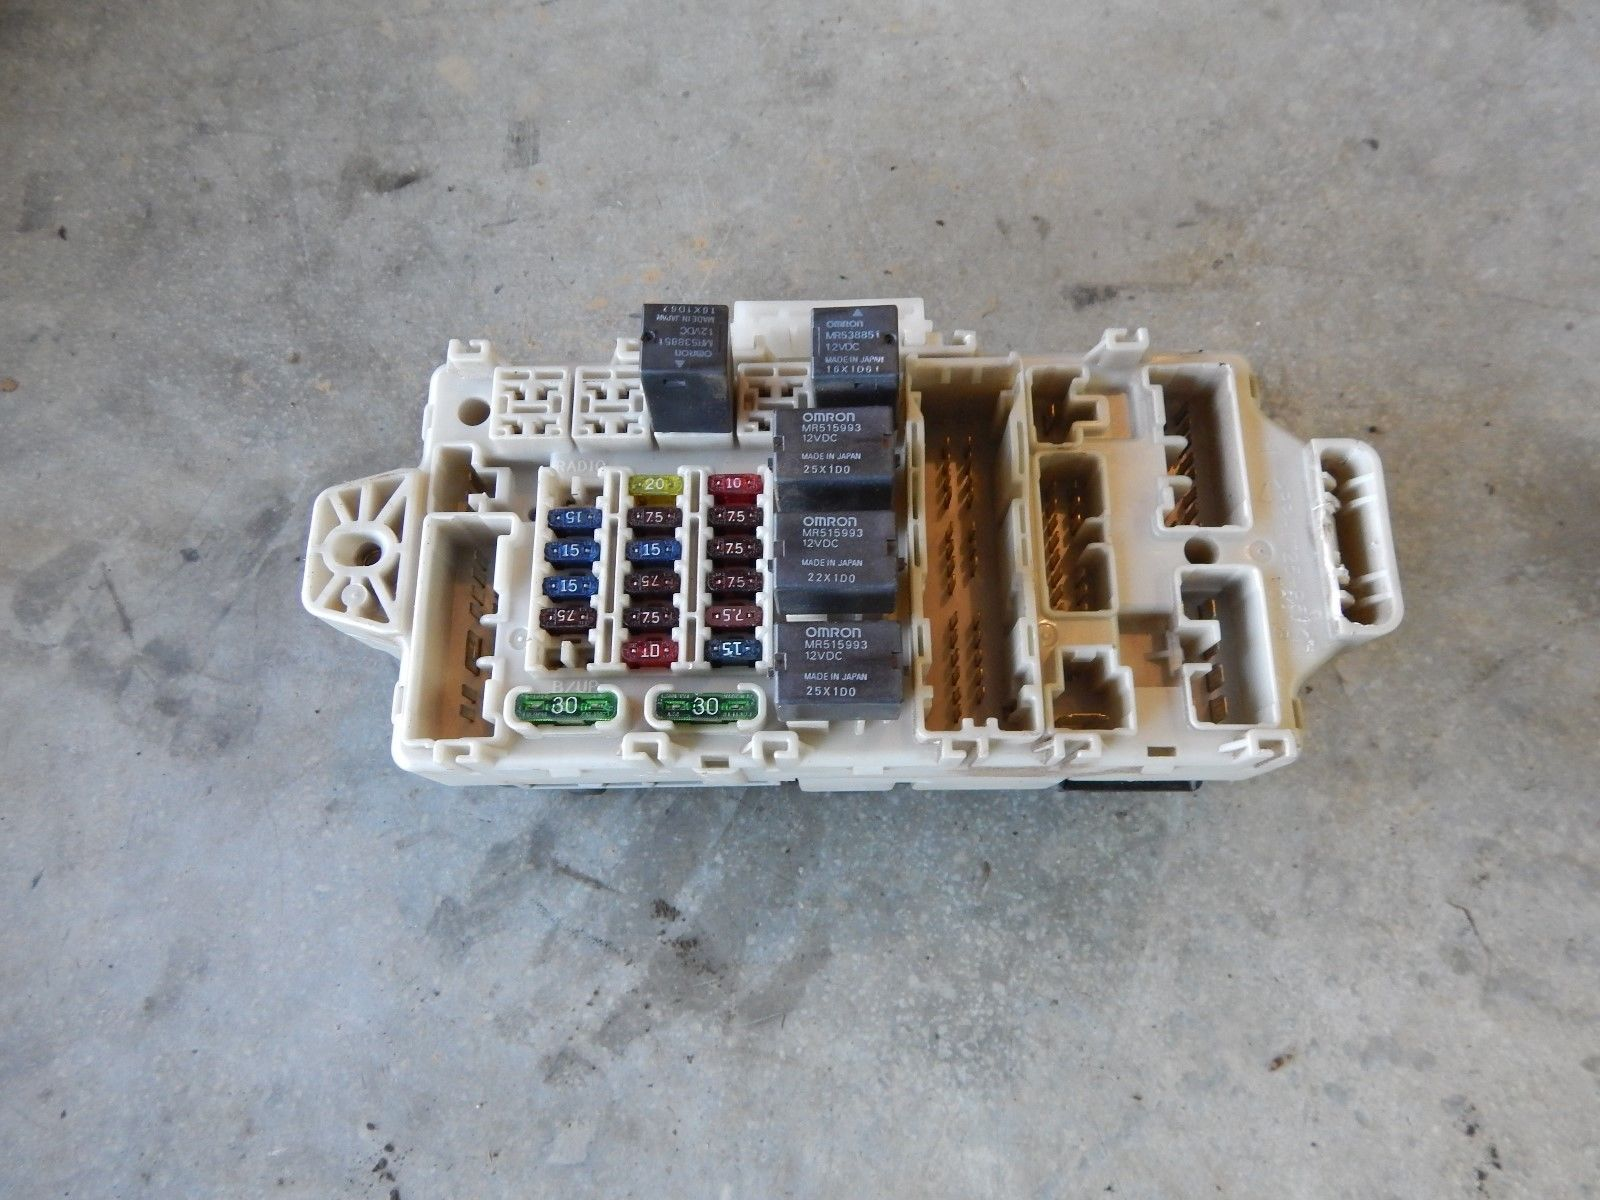 2002 2003 mitsubishi galant interior fuse box v6 3 0l 6 cyl 10914-1099 mr